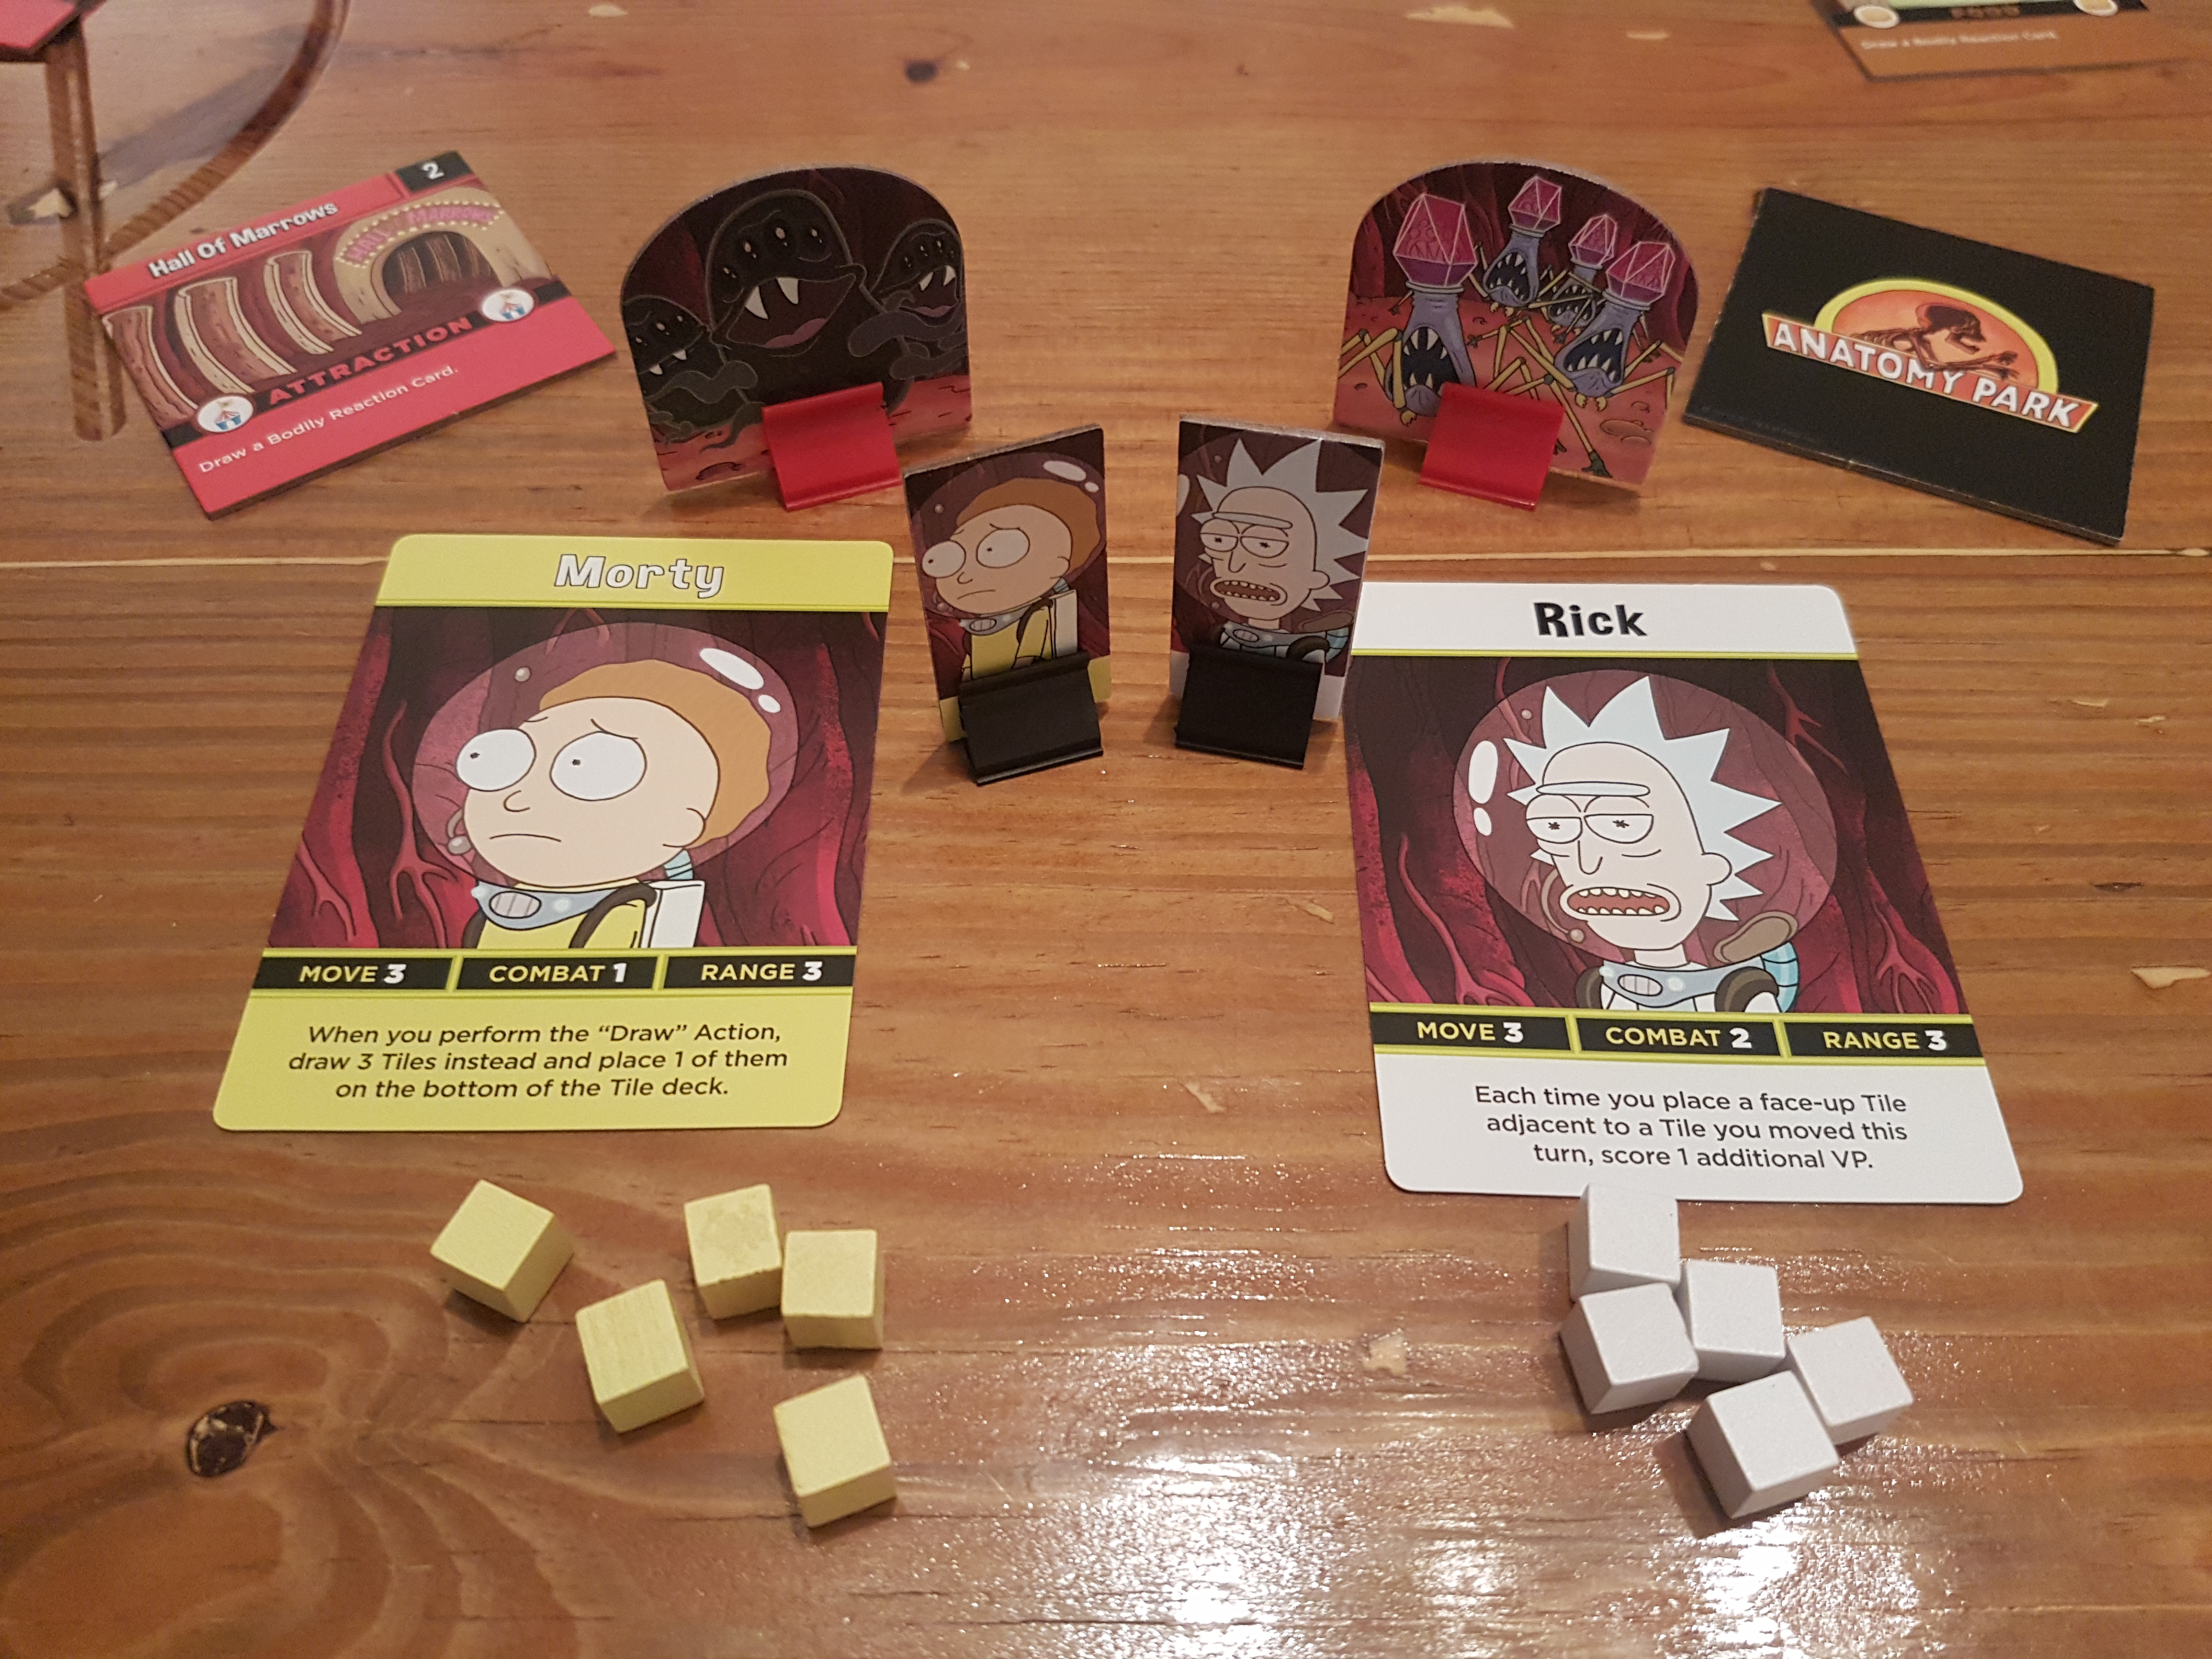 Rick & Morty Anatomy Park Review - Oh Jeez Rick! - Just Push Start